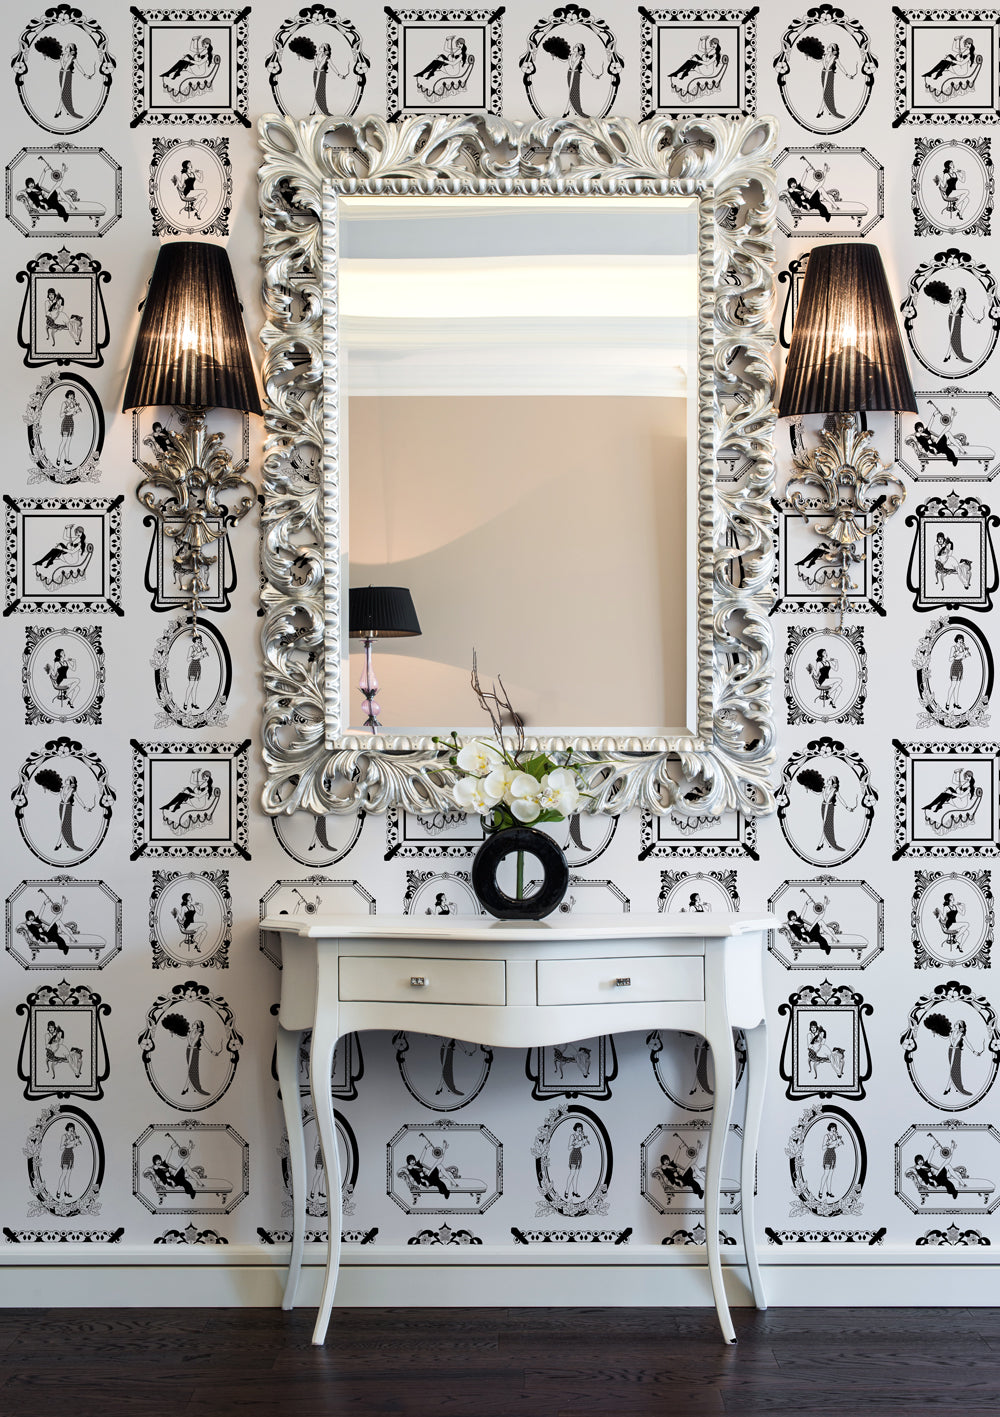 vintage 1920s themed wallpaper for art deco style interior design